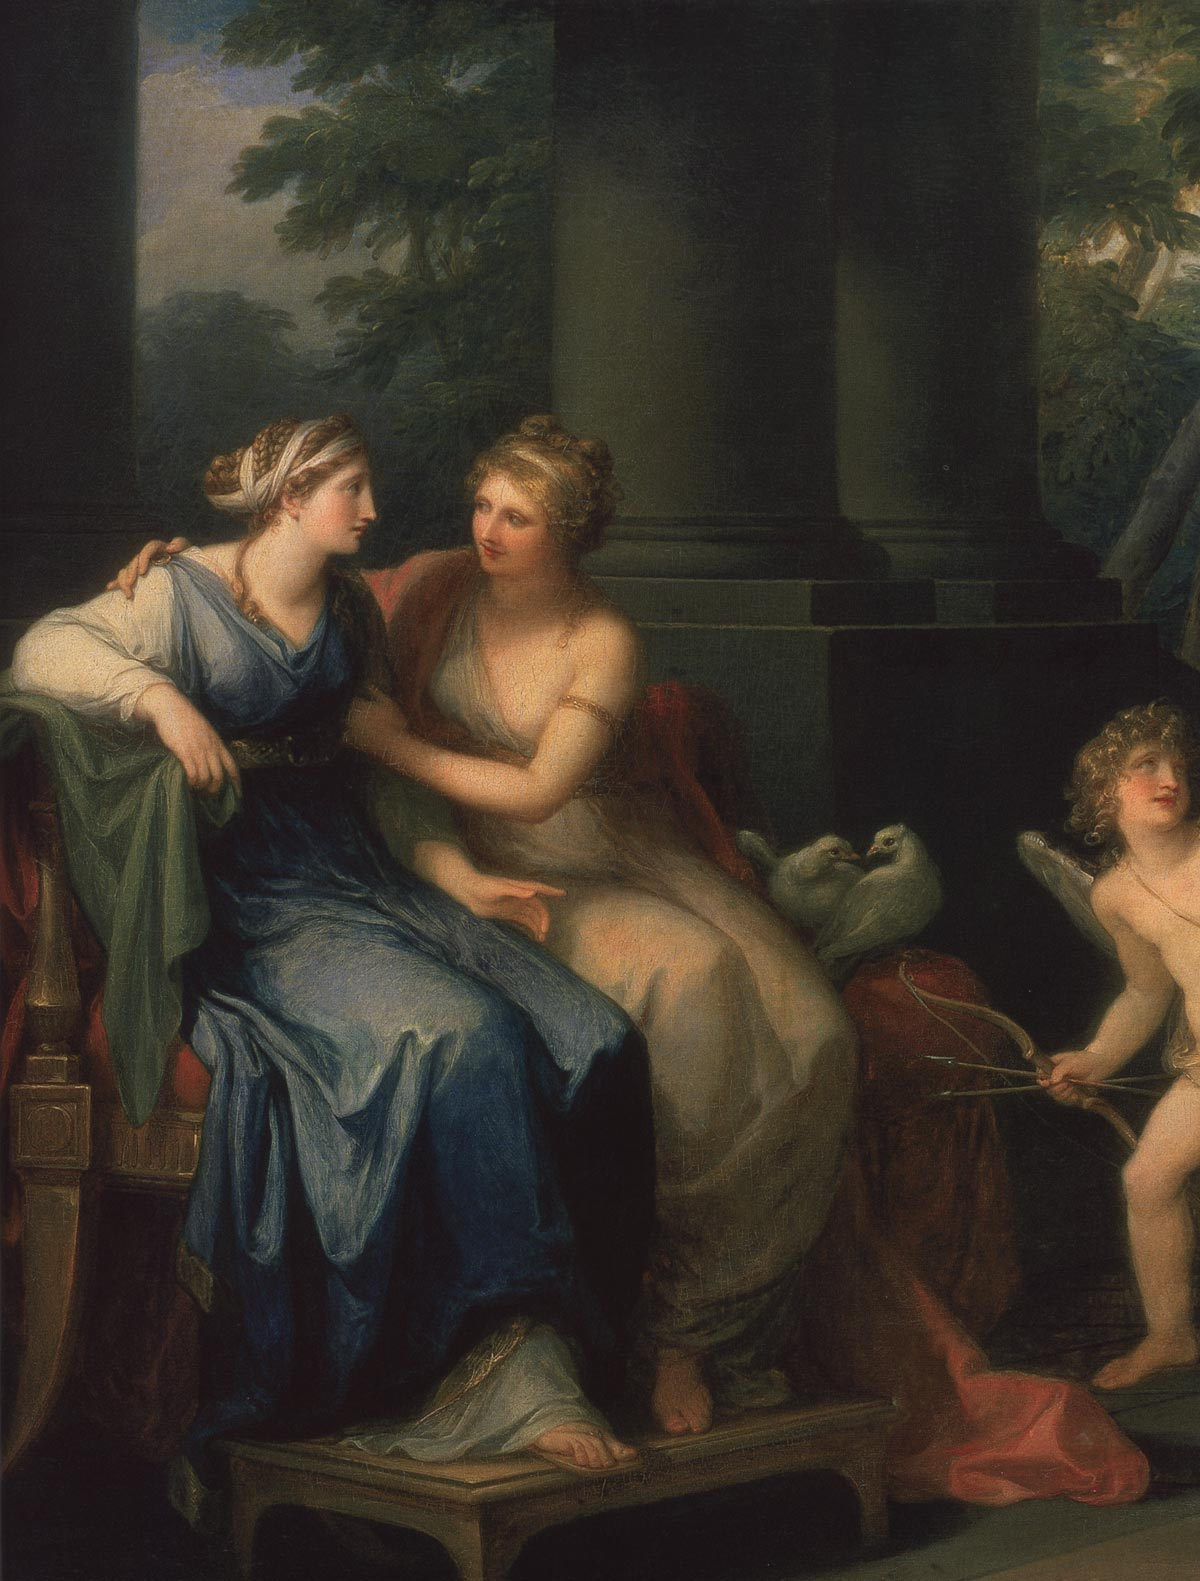 Venus is persuading Helen to love Paris. Fragment. Angelica Kauffmann (1741—1807). Oil on canvas. 102 × 127.5 cm. In the centre, on the plinth of a column, signature and date — Angelica Kauffmann pinx. 1790. Inv. No. ГЭ 5350. Saint Petersburg, The State Hermitage Museum